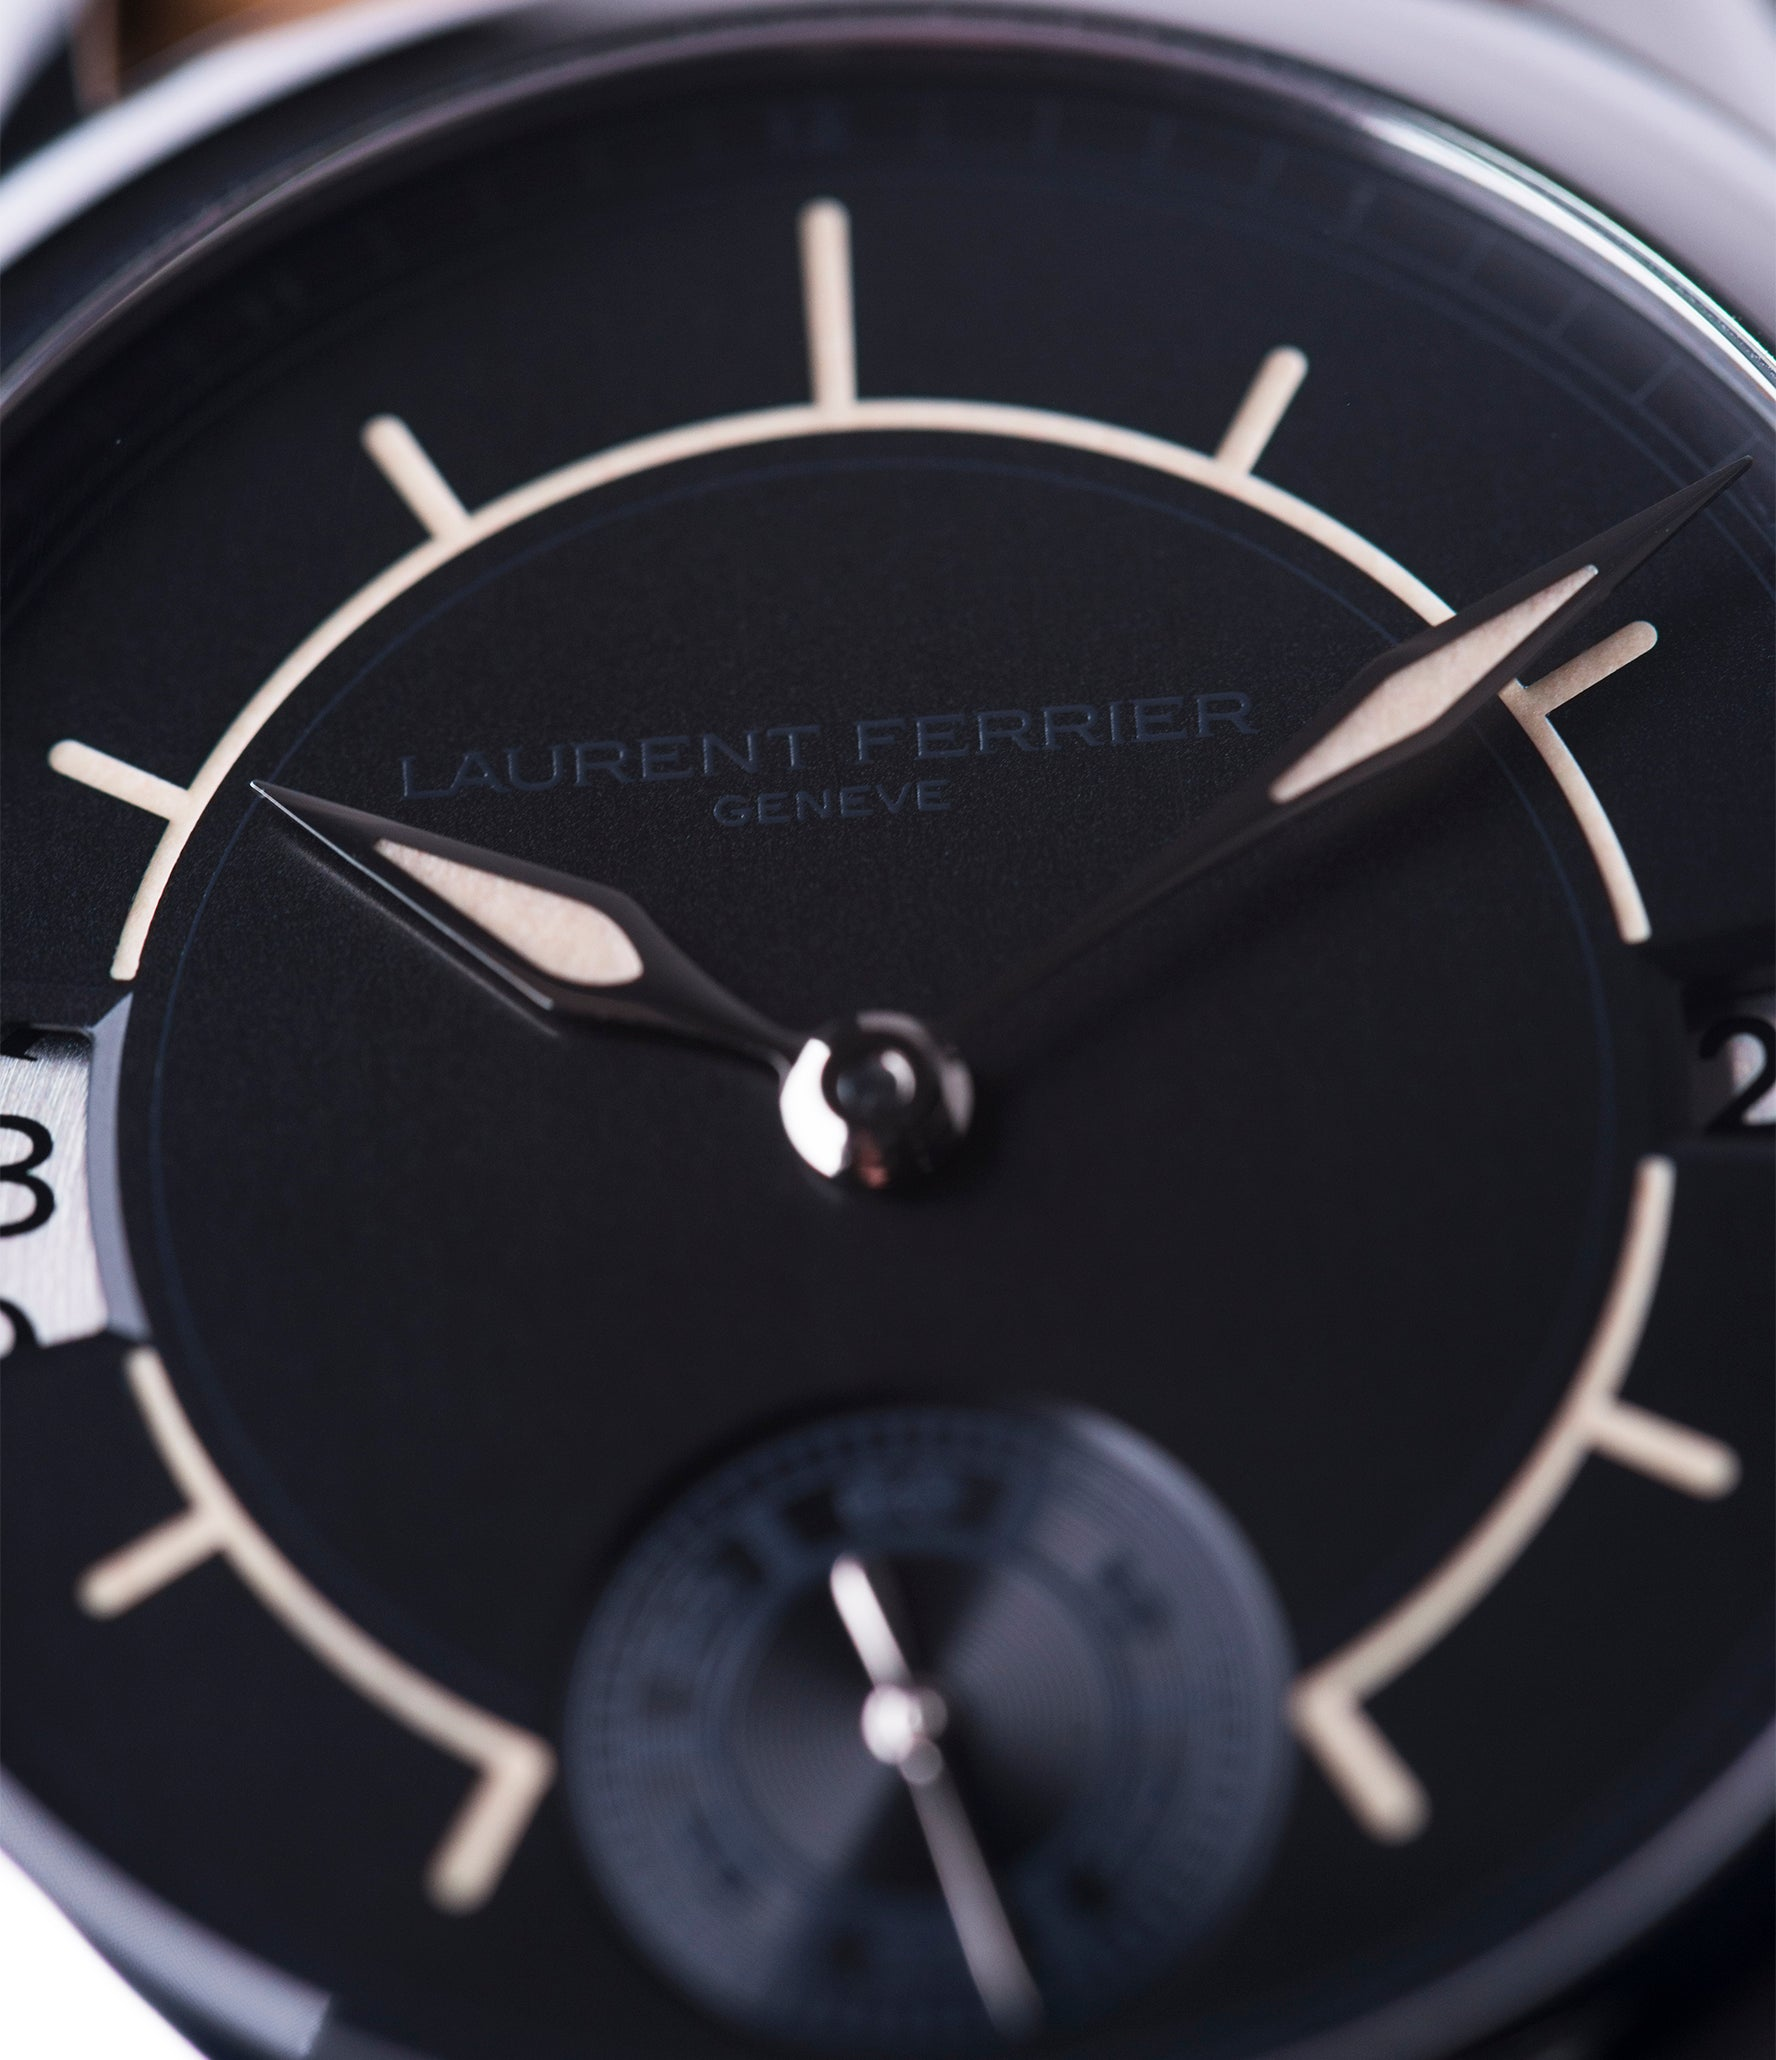 black dial Laurent Ferrier Galet Traveller Boreal steel dual-timezone black dial dress watch for sale online at A Collected Man London approved seller of pre-owned Laurent Ferrier independent watchmakers